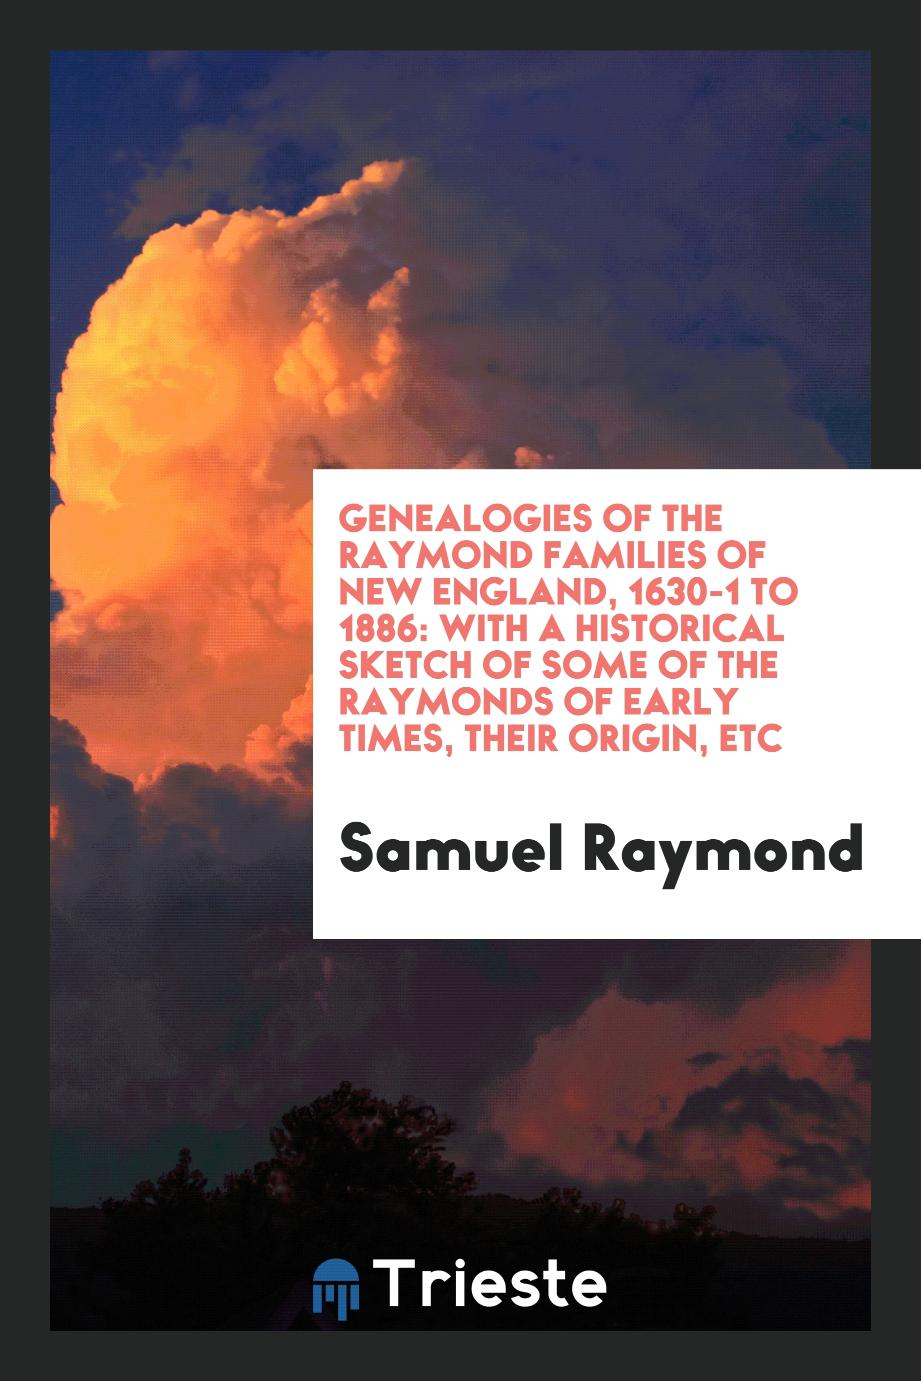 Genealogies of the Raymond Families of New England, 1630-1 to 1886: With a Historical Sketch of Some of the Raymonds of Early Times, Their Origin, etc